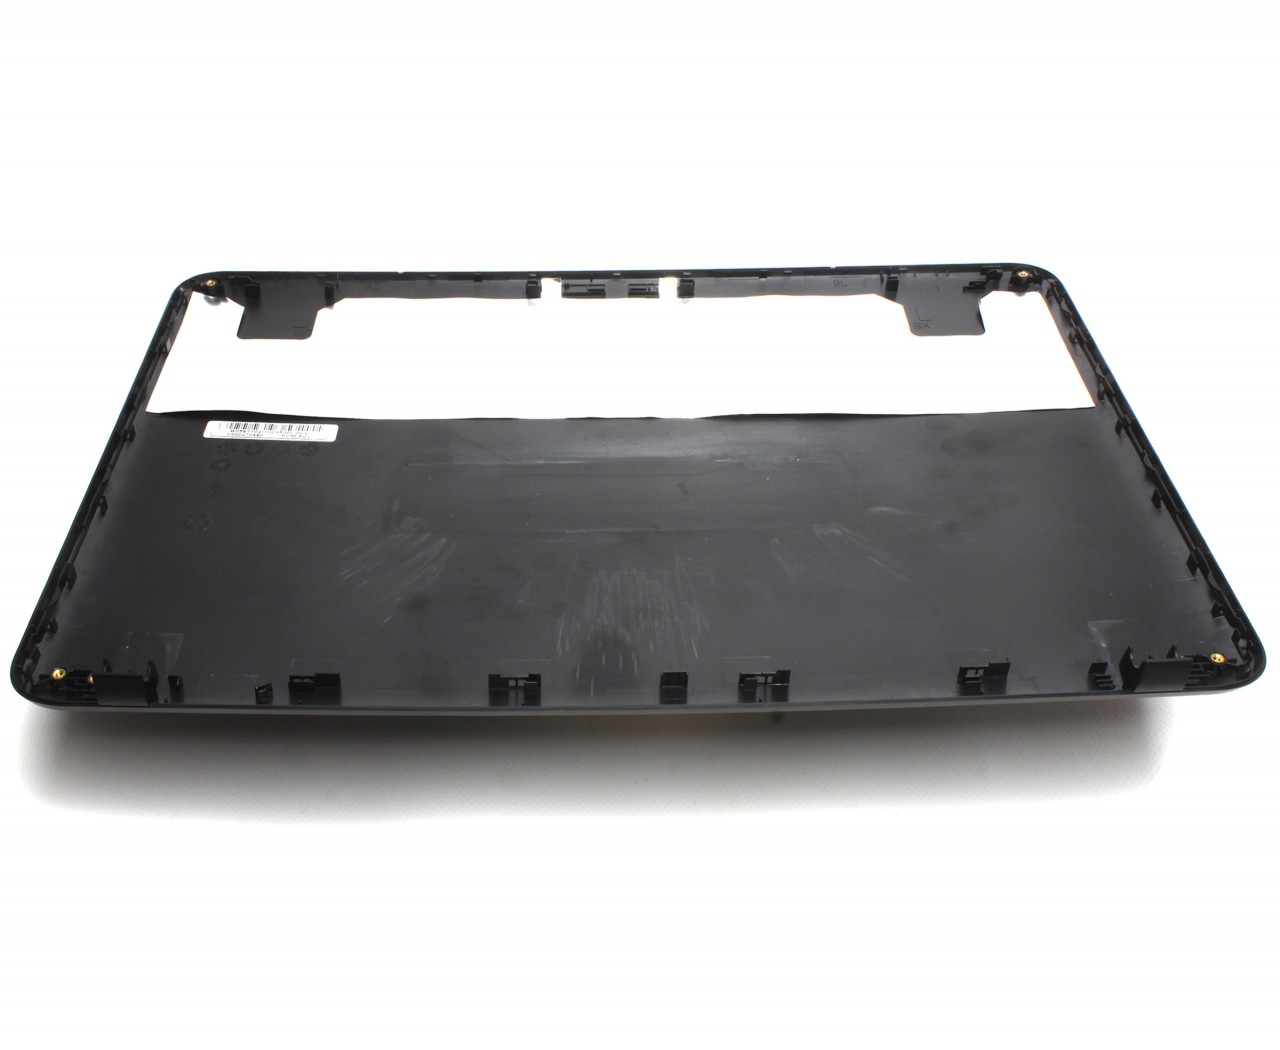 Capac Display BackCover Toshiba Satellite S850 Carcasa Display Neagra cu 2 Suruburi Balamale imagine powerlaptop.ro 2021